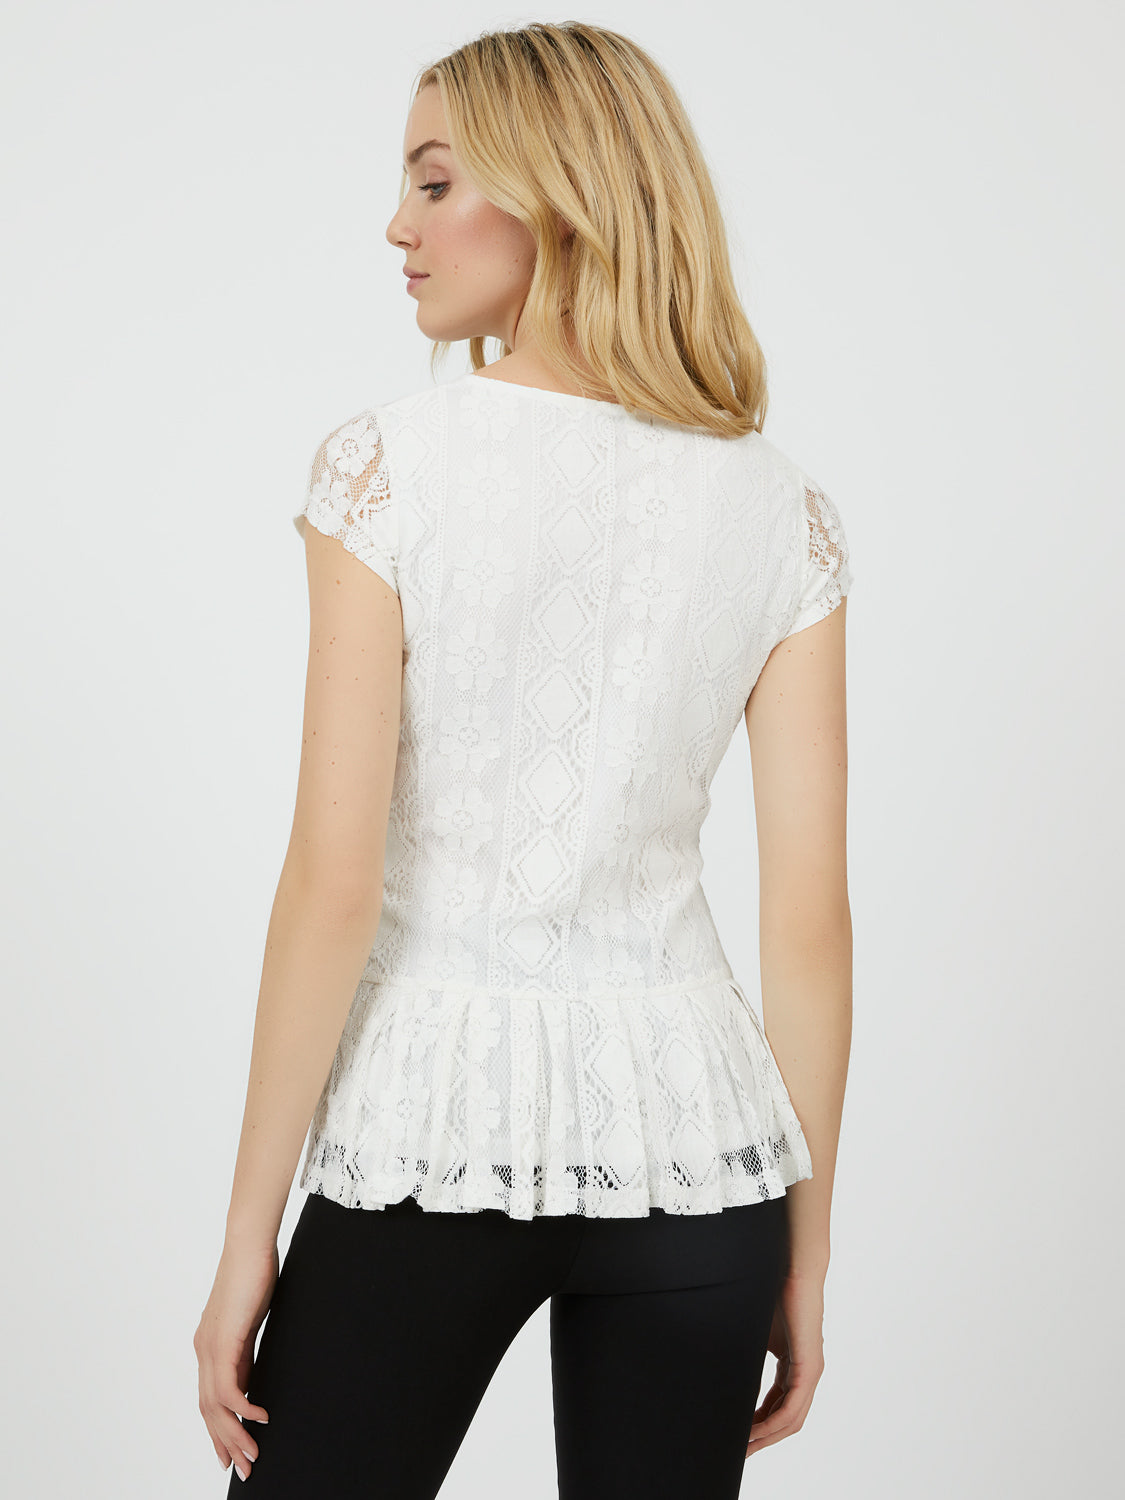 Cap Sleeve Peplum Lace Top